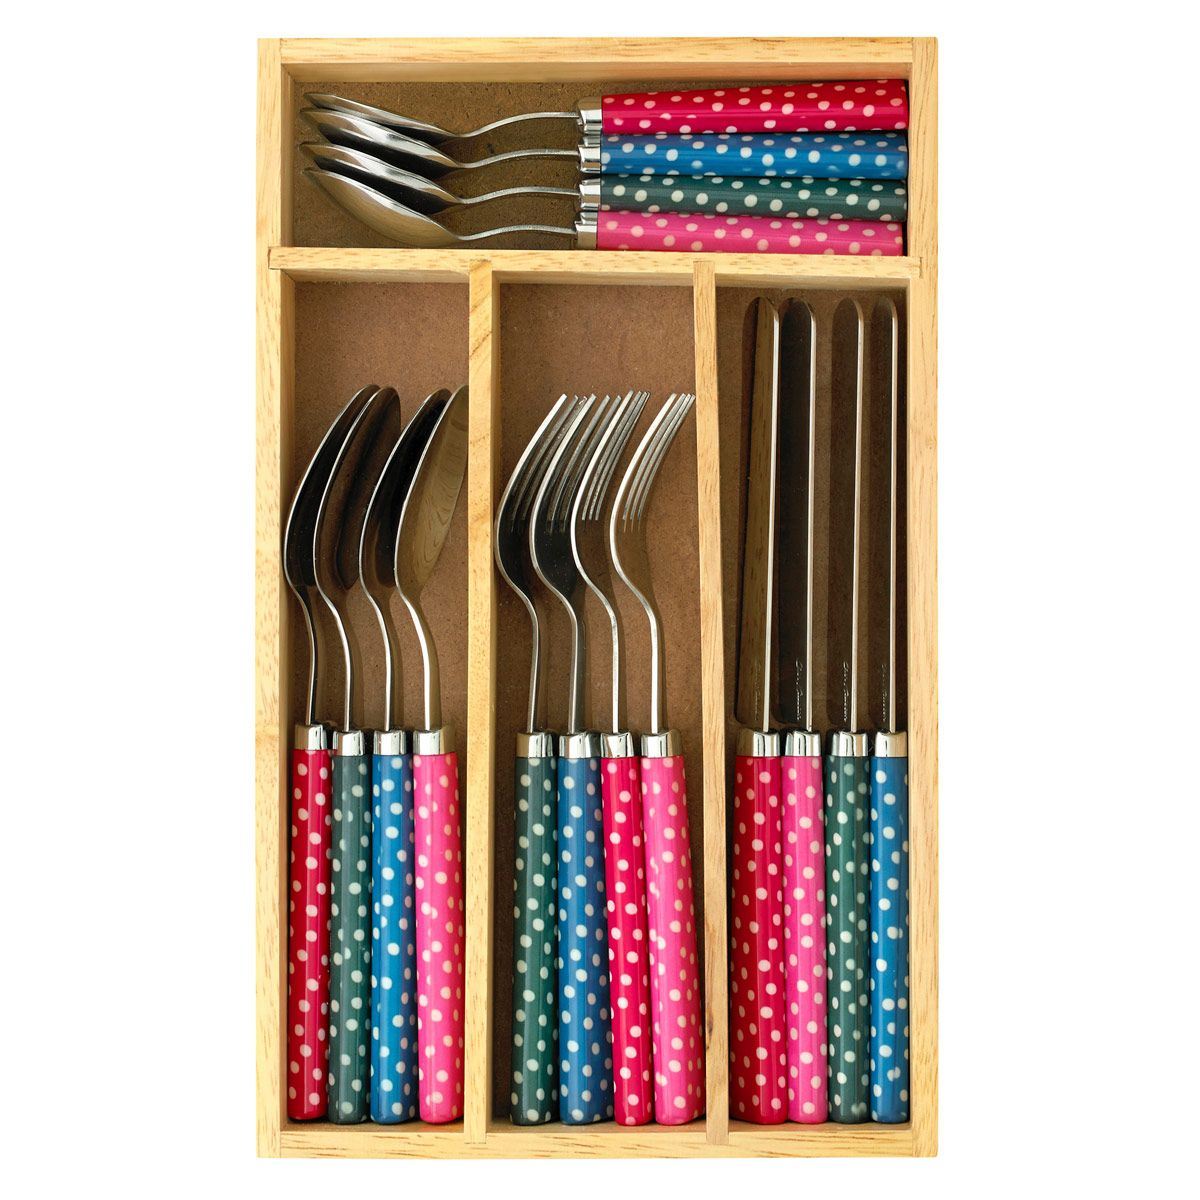 Scattered Spot 16 Piece Cutlery Set | Cooking and Dining | CathKidston  sc 1 st  Pinterest & Scattered Spot 16 Piece Cutlery Set | Cooking and Dining ...